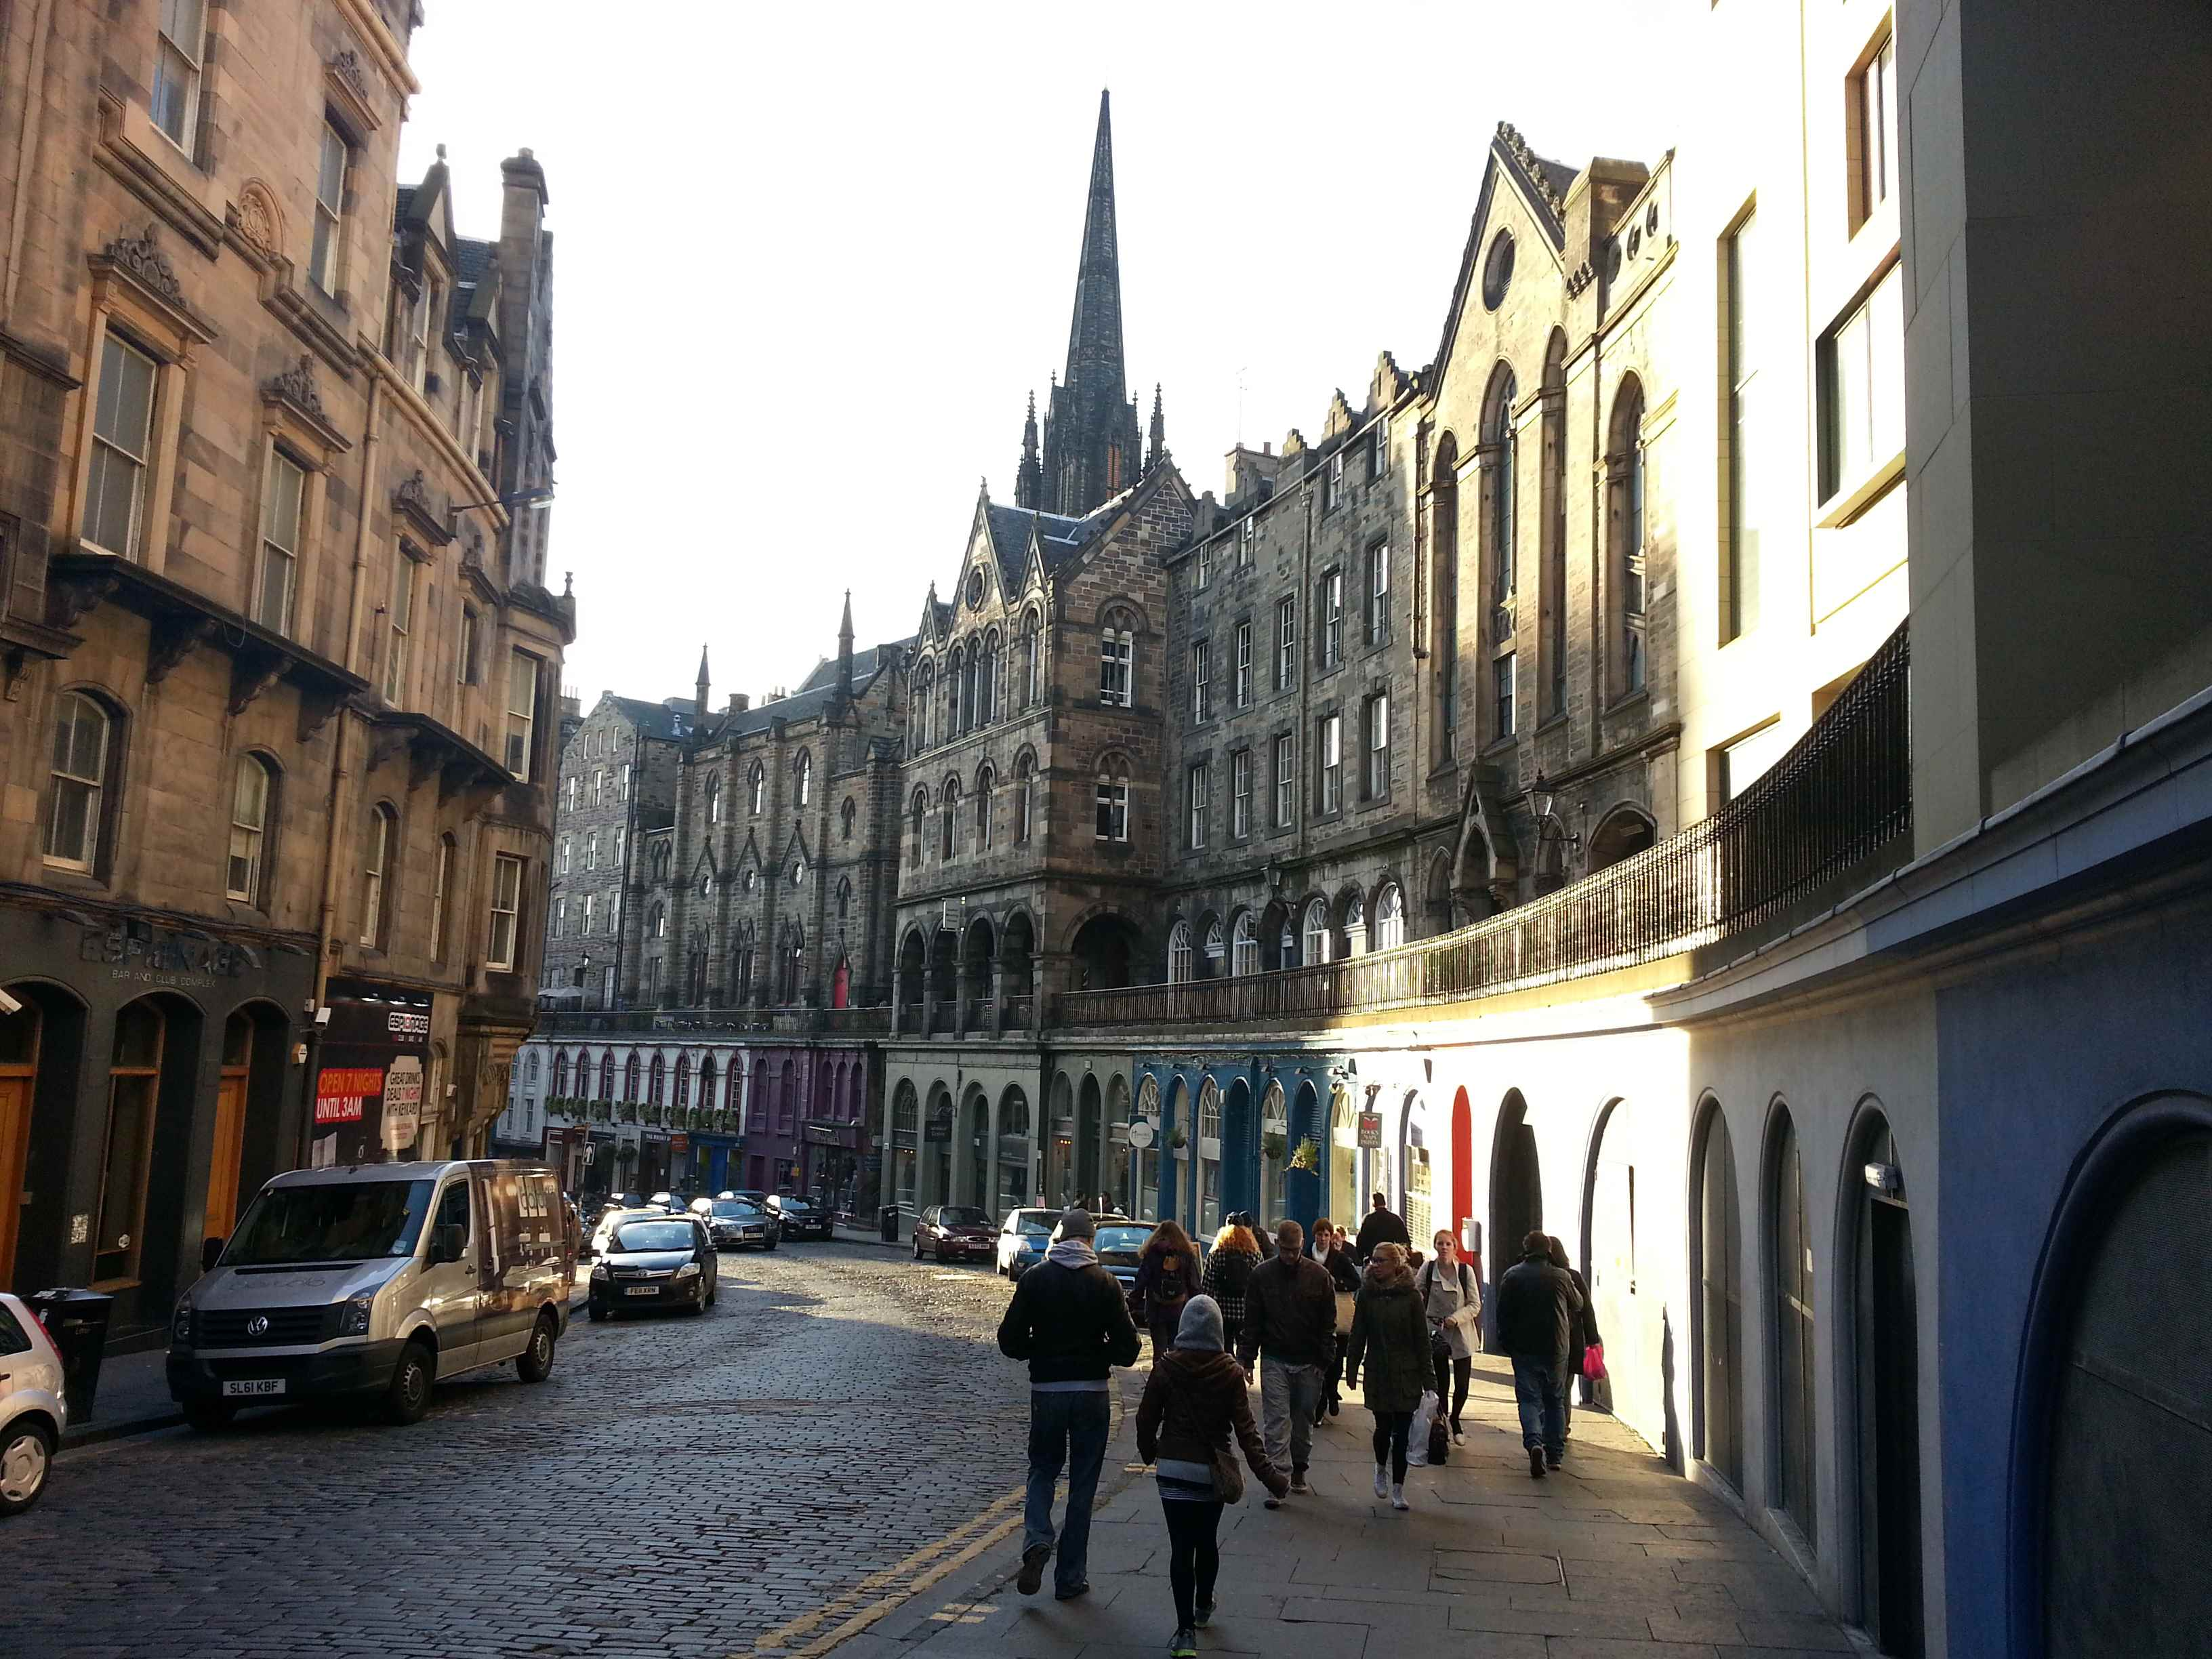 Strae in der Old Town von Edinburgh  Jan Kanter